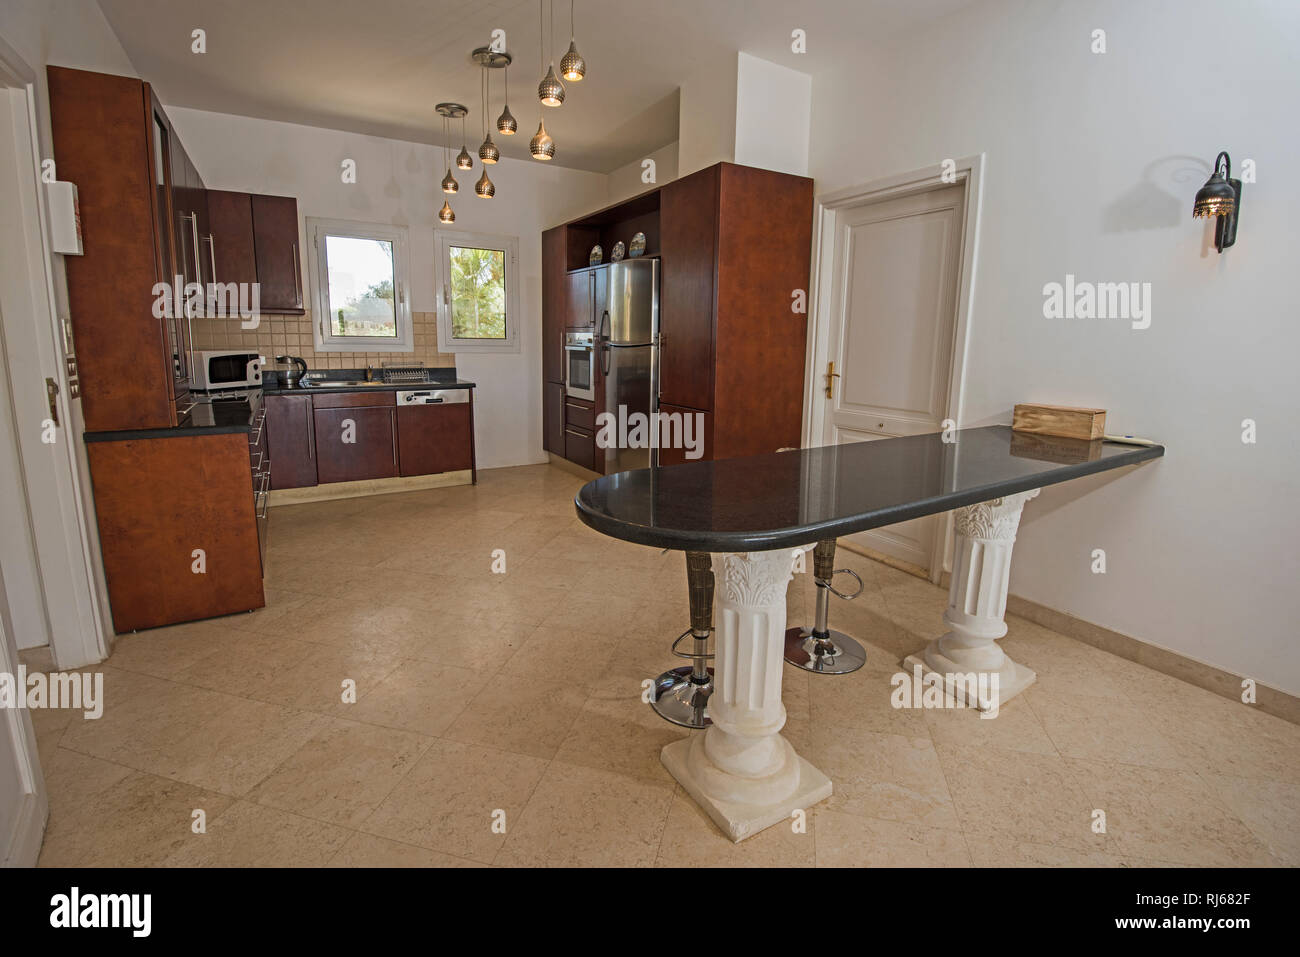 Kitchen area in luxury holiday villa show home showing ...